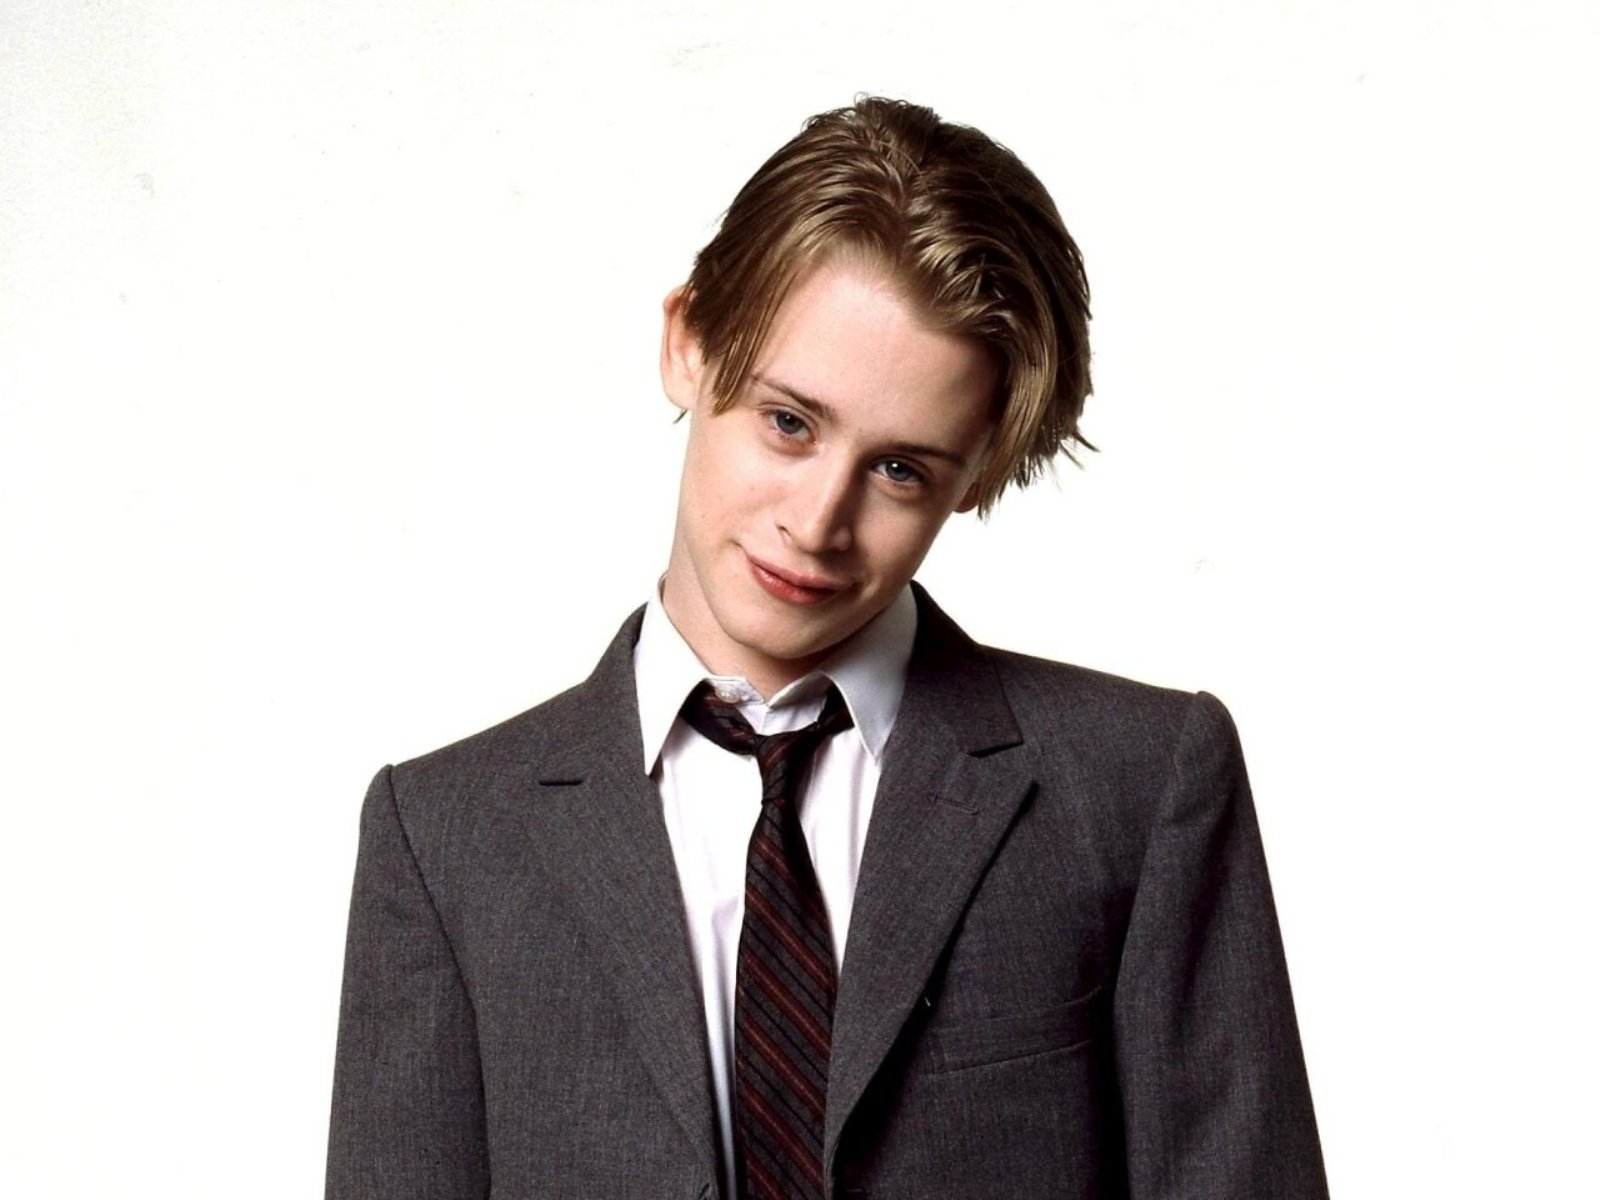 Actor Macaulay Culkin - age: 5